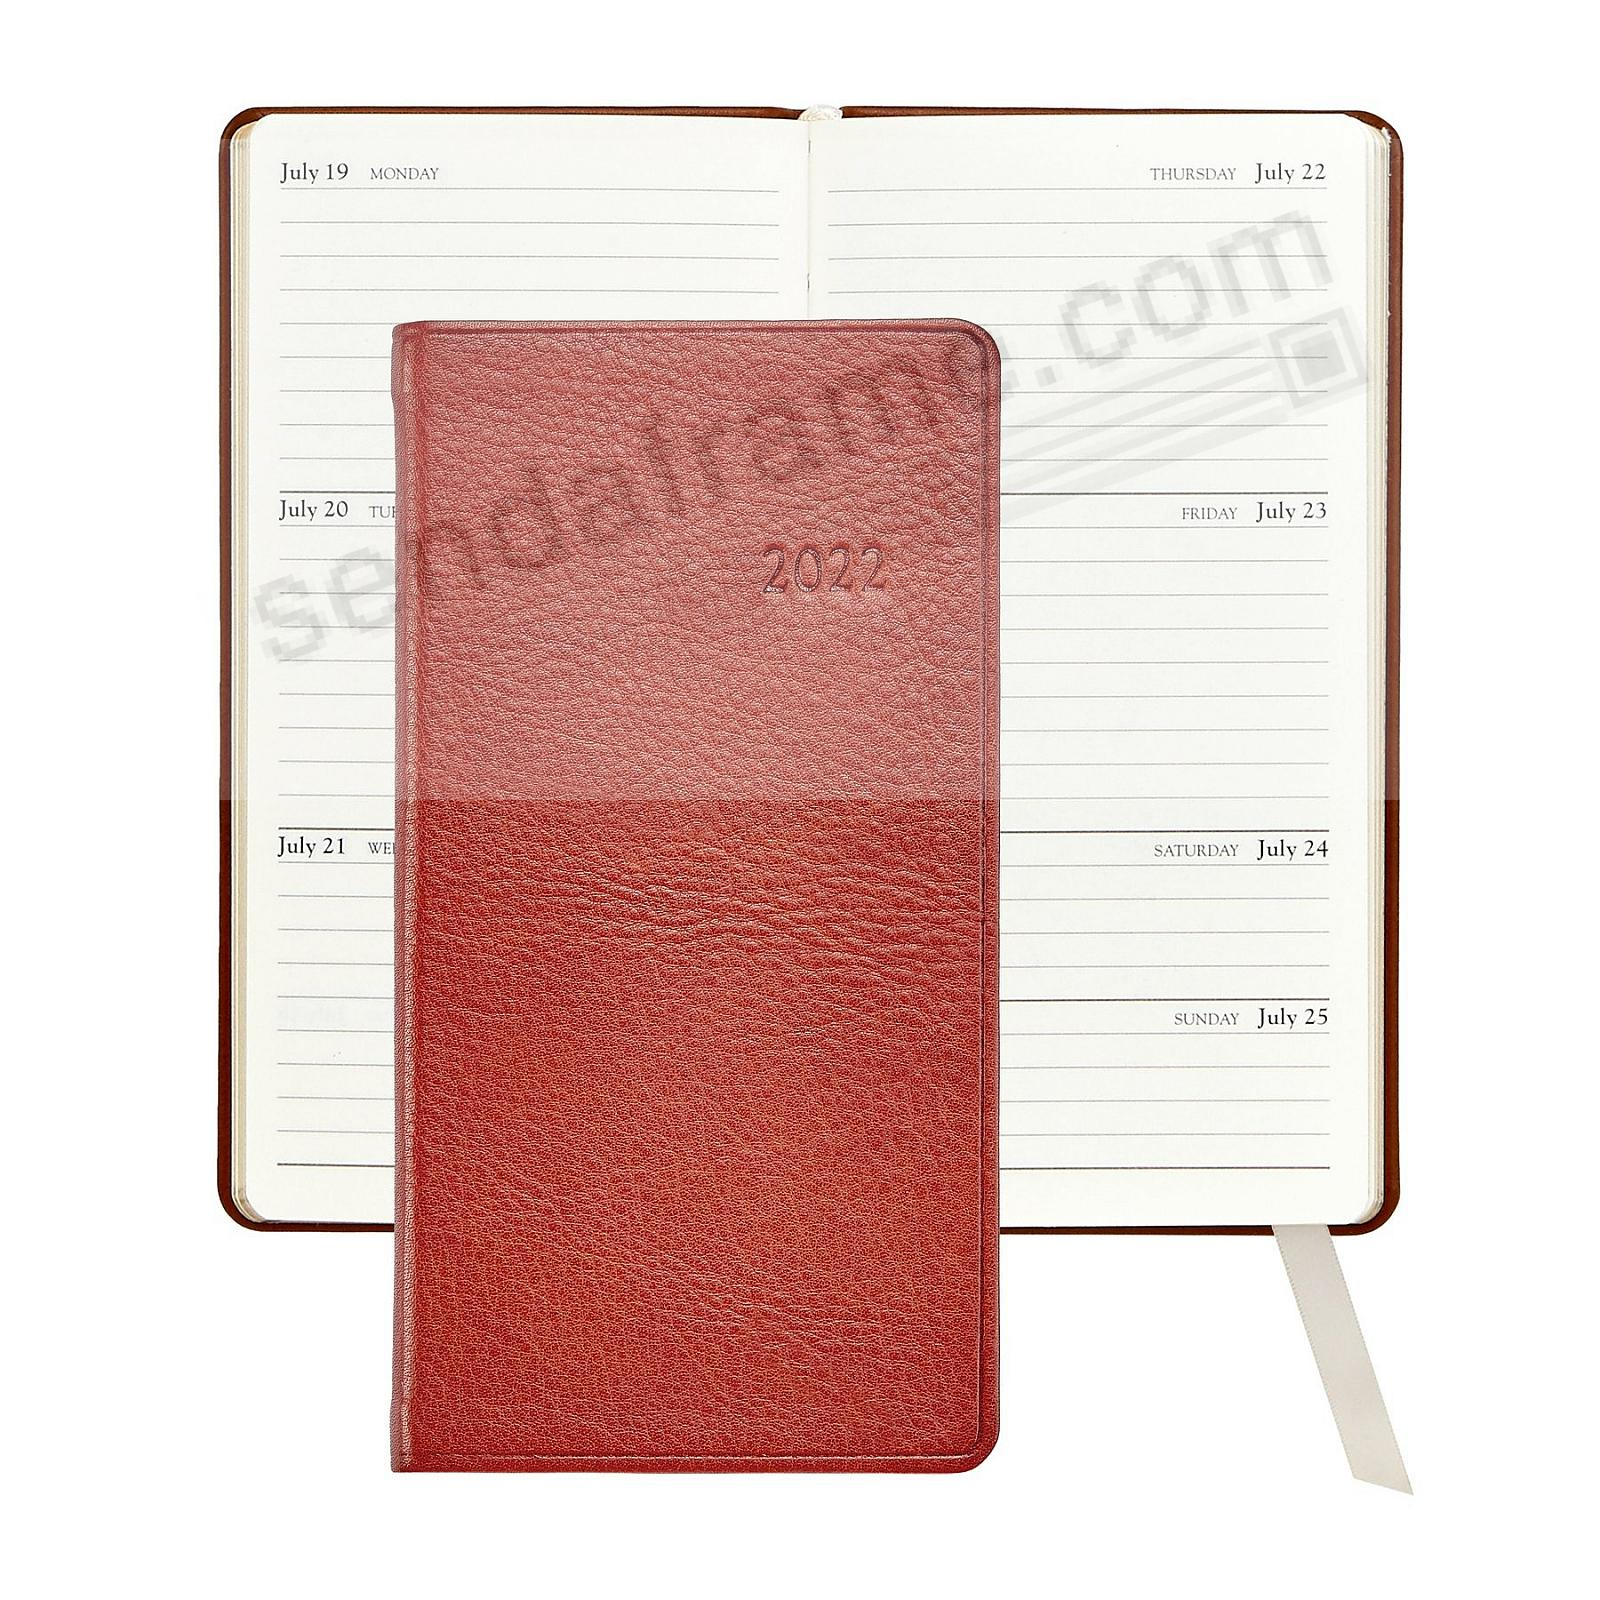 2020 MAPLE 6in Pocket Datebook Fine TRADITIONAL Leather by Graphic Image™